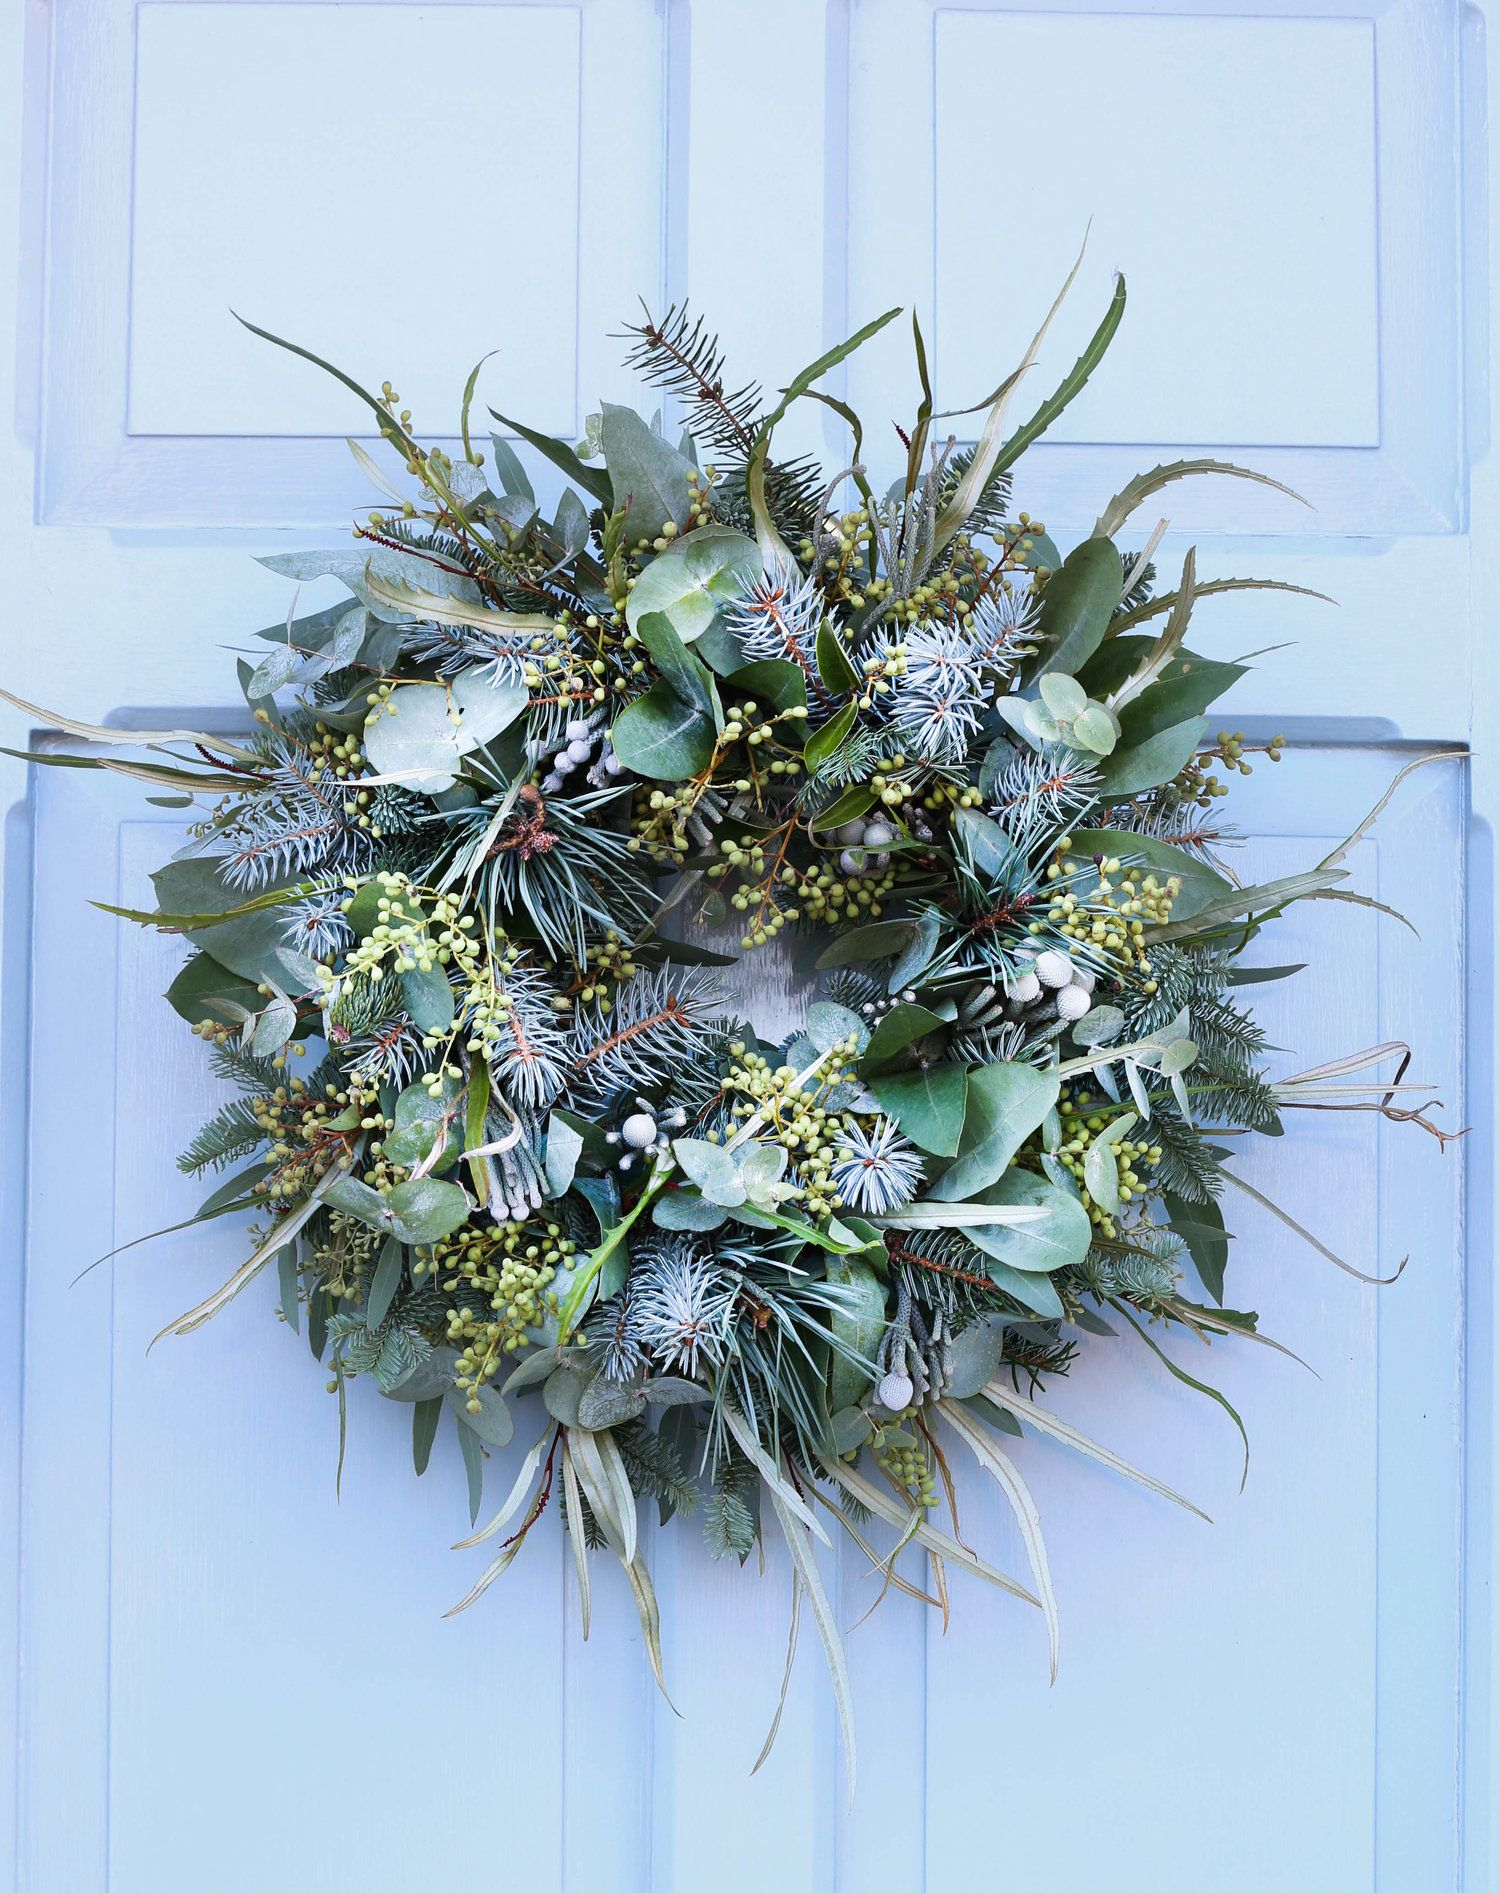 All foliage, textured Christmas Wreath | Christmas wreaths, Natural christmas wreaths, Christmas wreaths diy